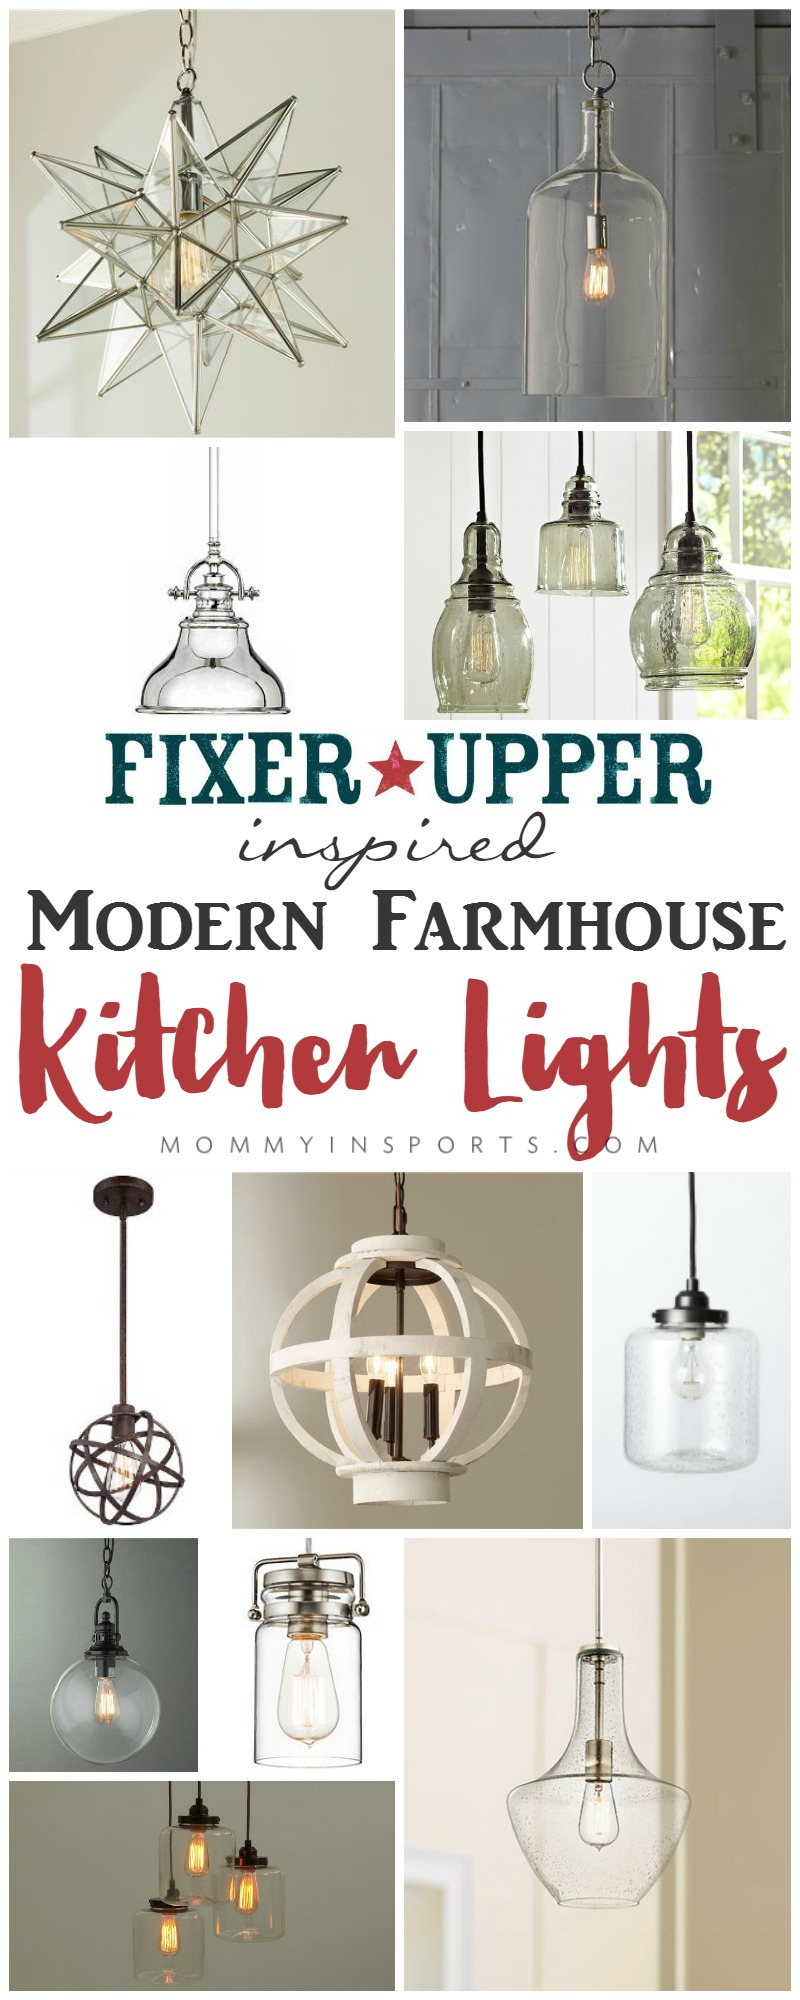 Fixer Upper Inspired Modern Farmhouse Kitchen Lights Kristen Hewitt